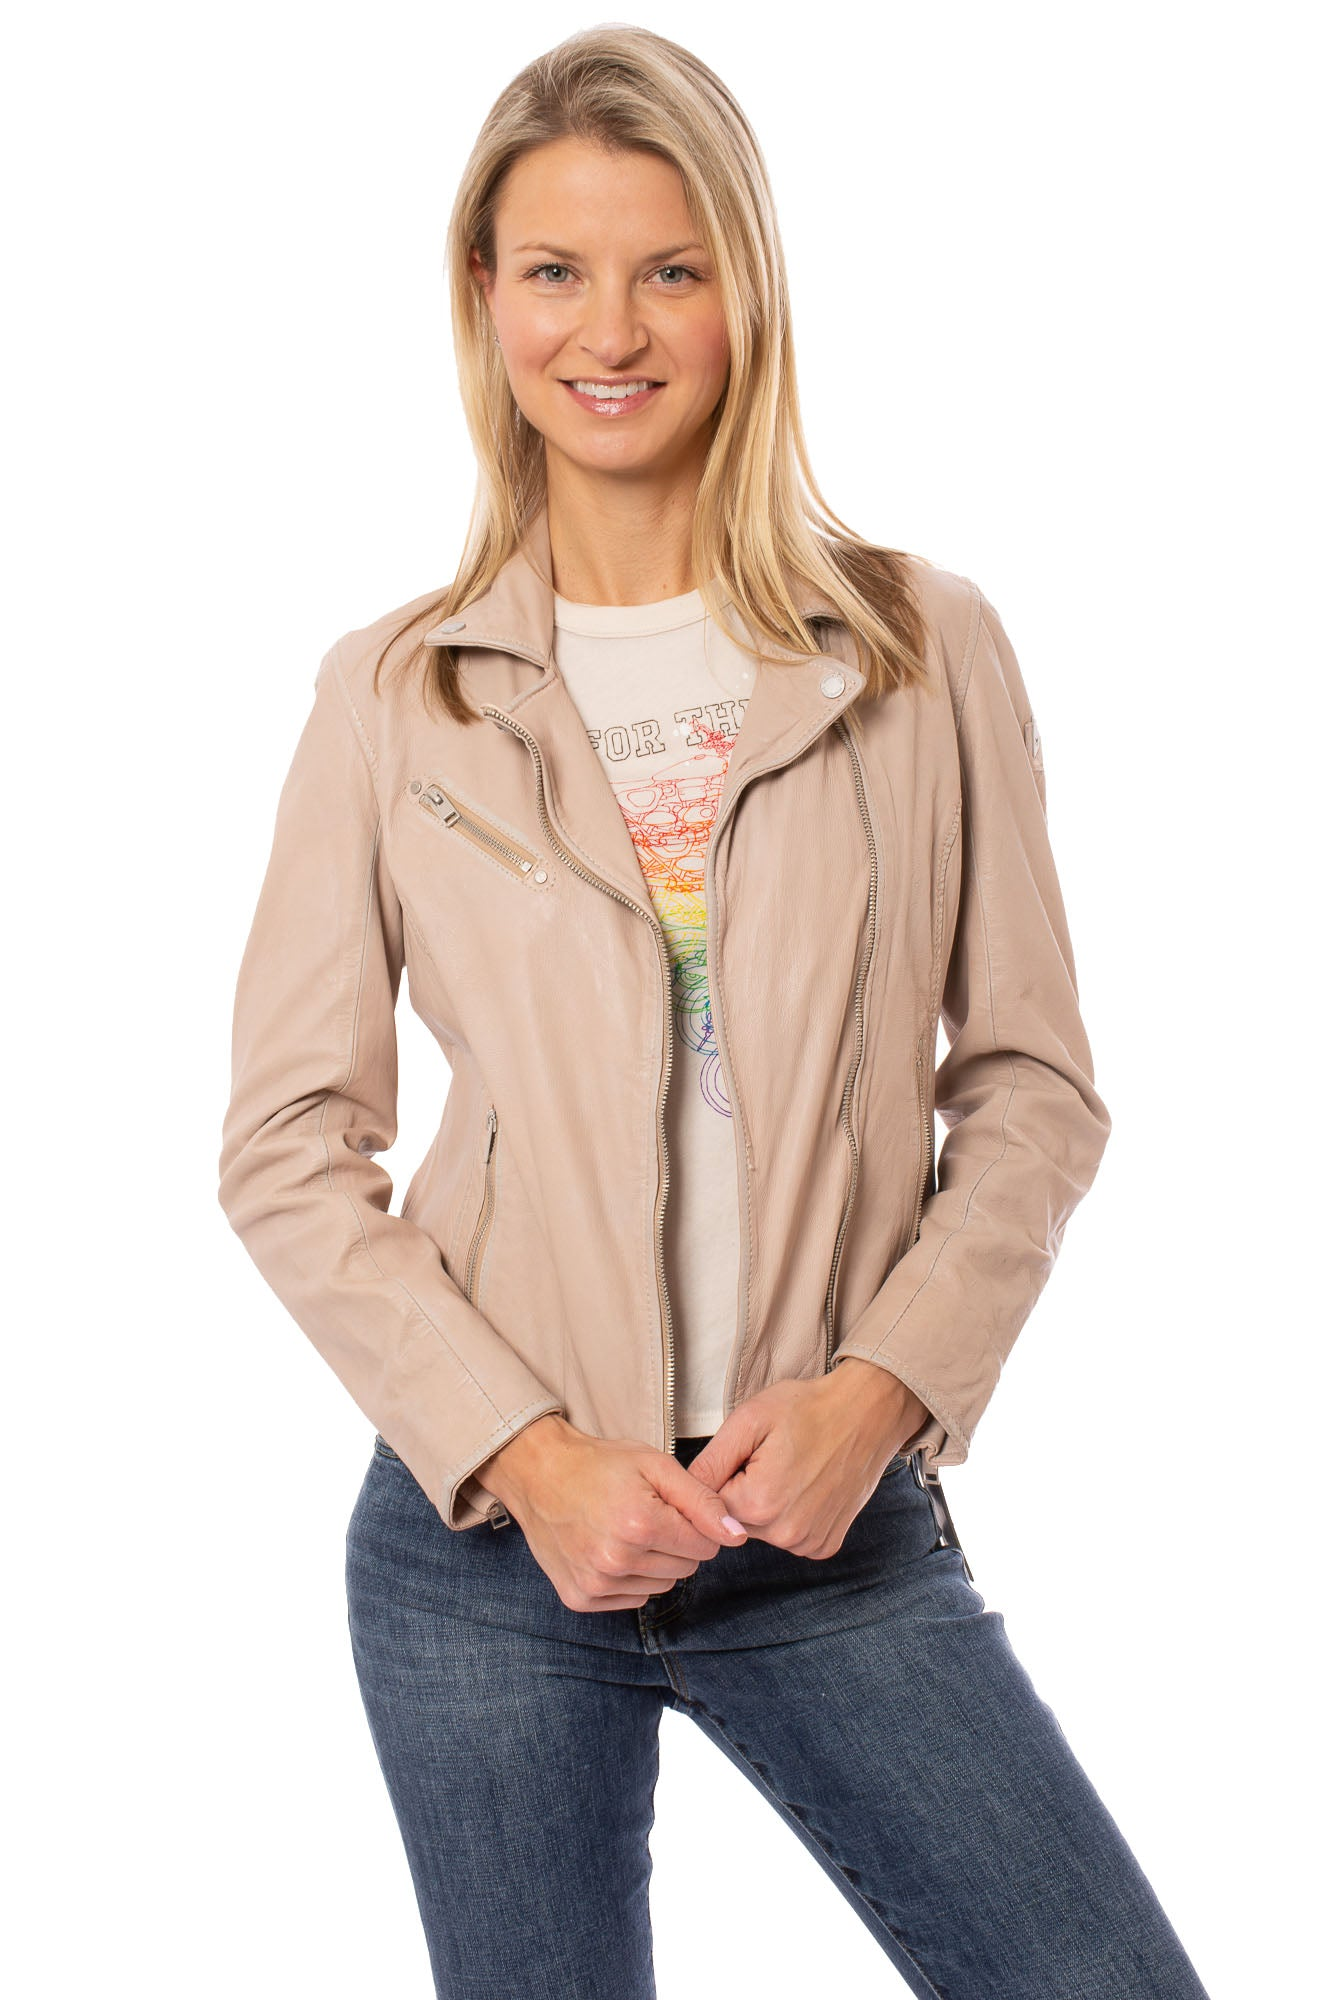 Mauritius - Sofia 4 Lambskin Leather Moto Jacket (SOFIA 4, Pink Lambs Leather)